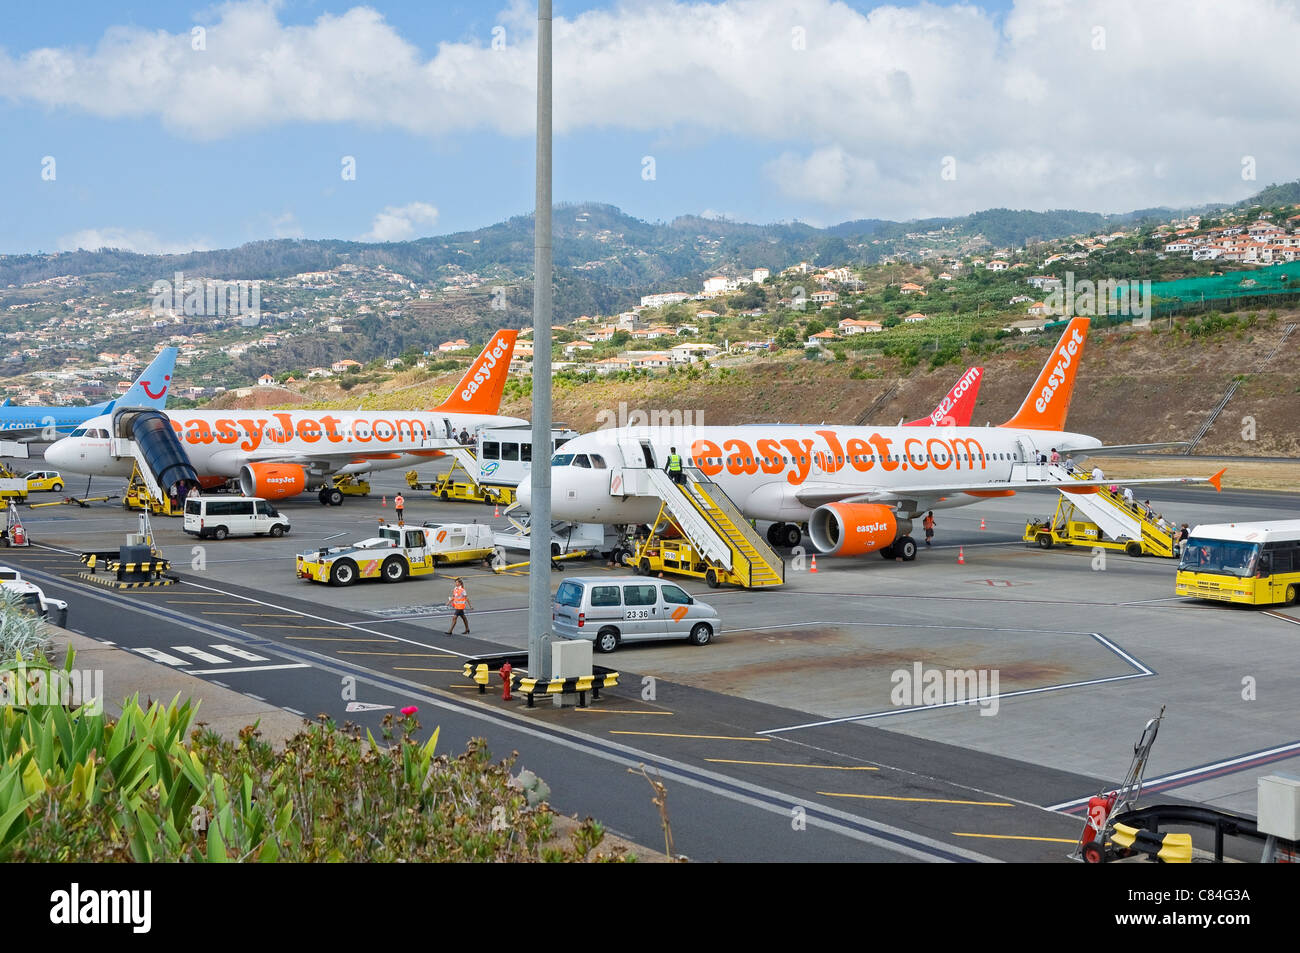 EasyJet planes parked at Funchal airport Madeira Portugal EU Europe - Stock Image